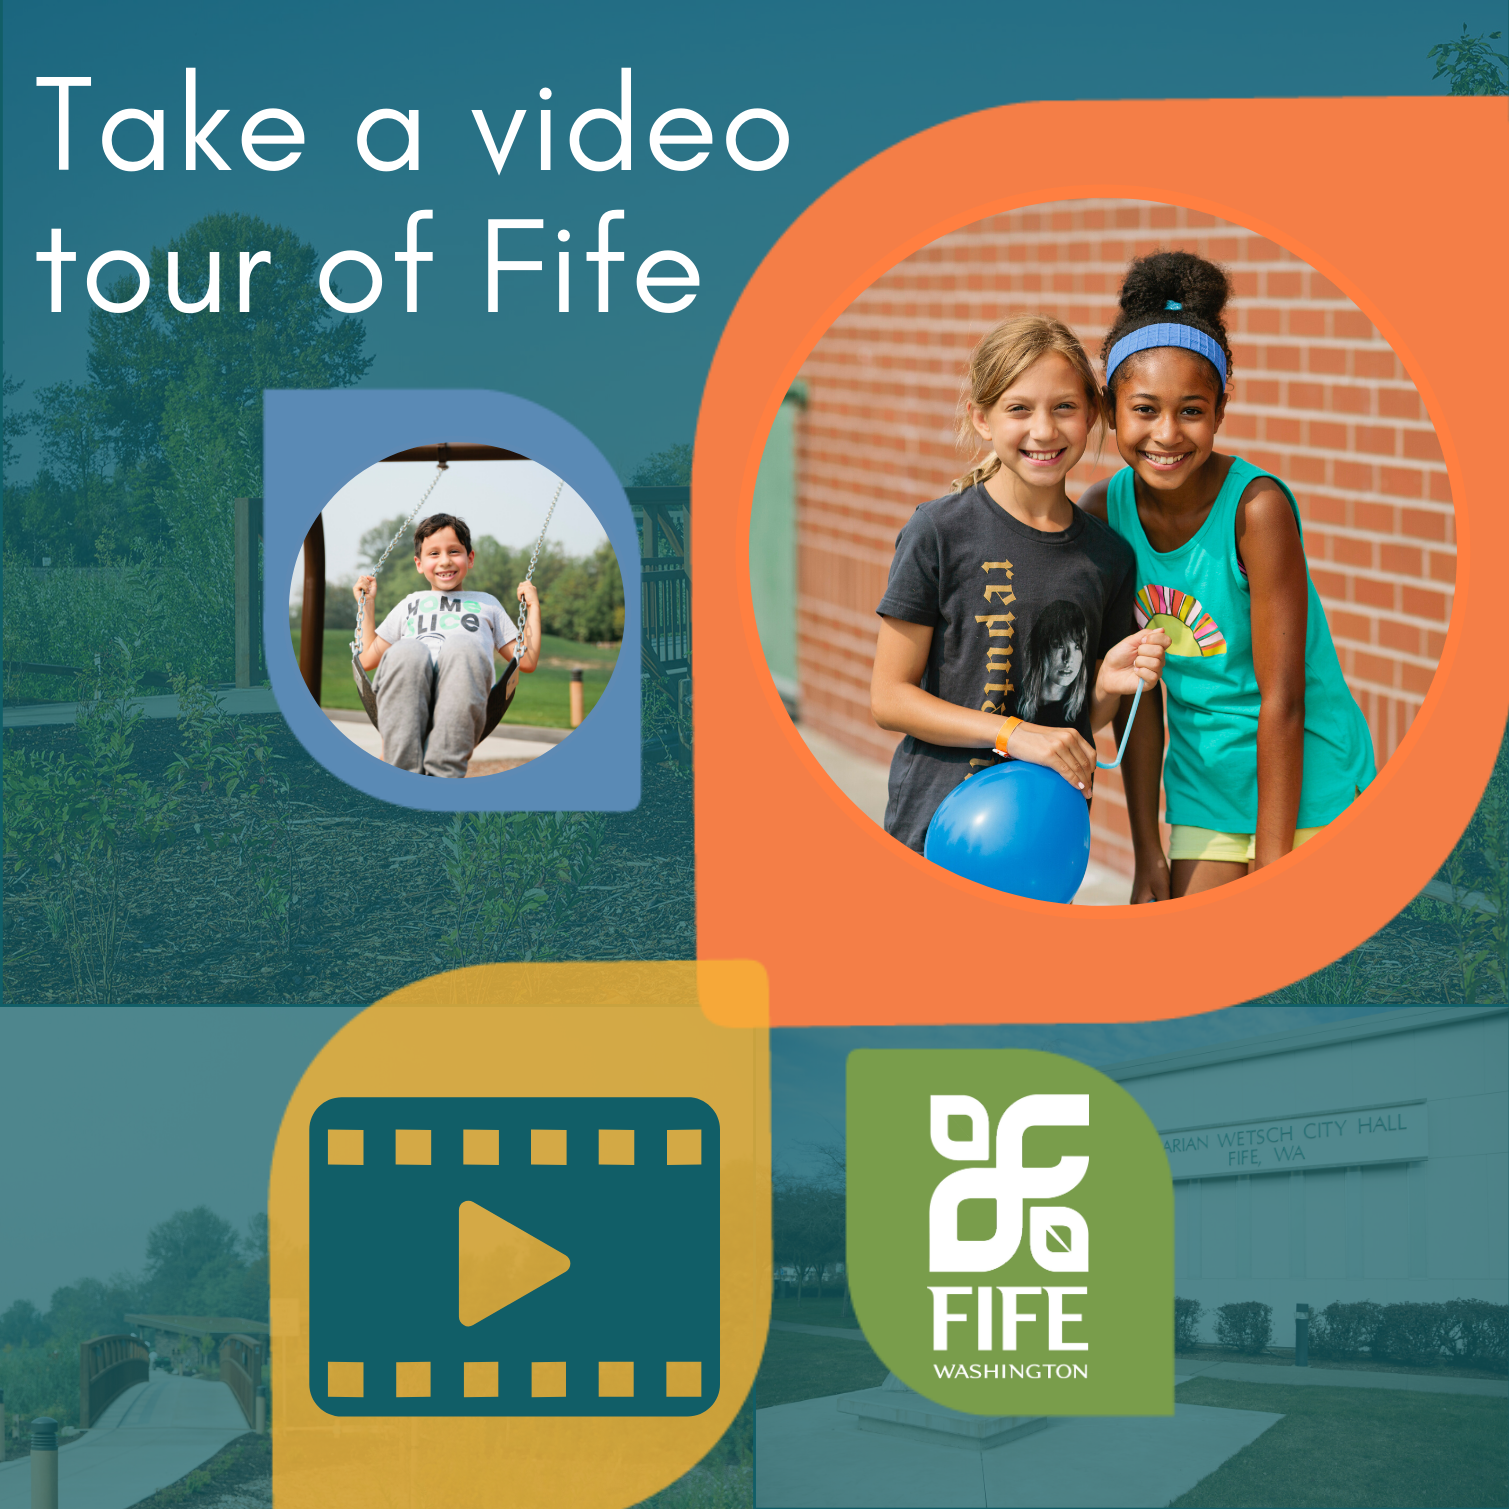 Take a video tour of Fife